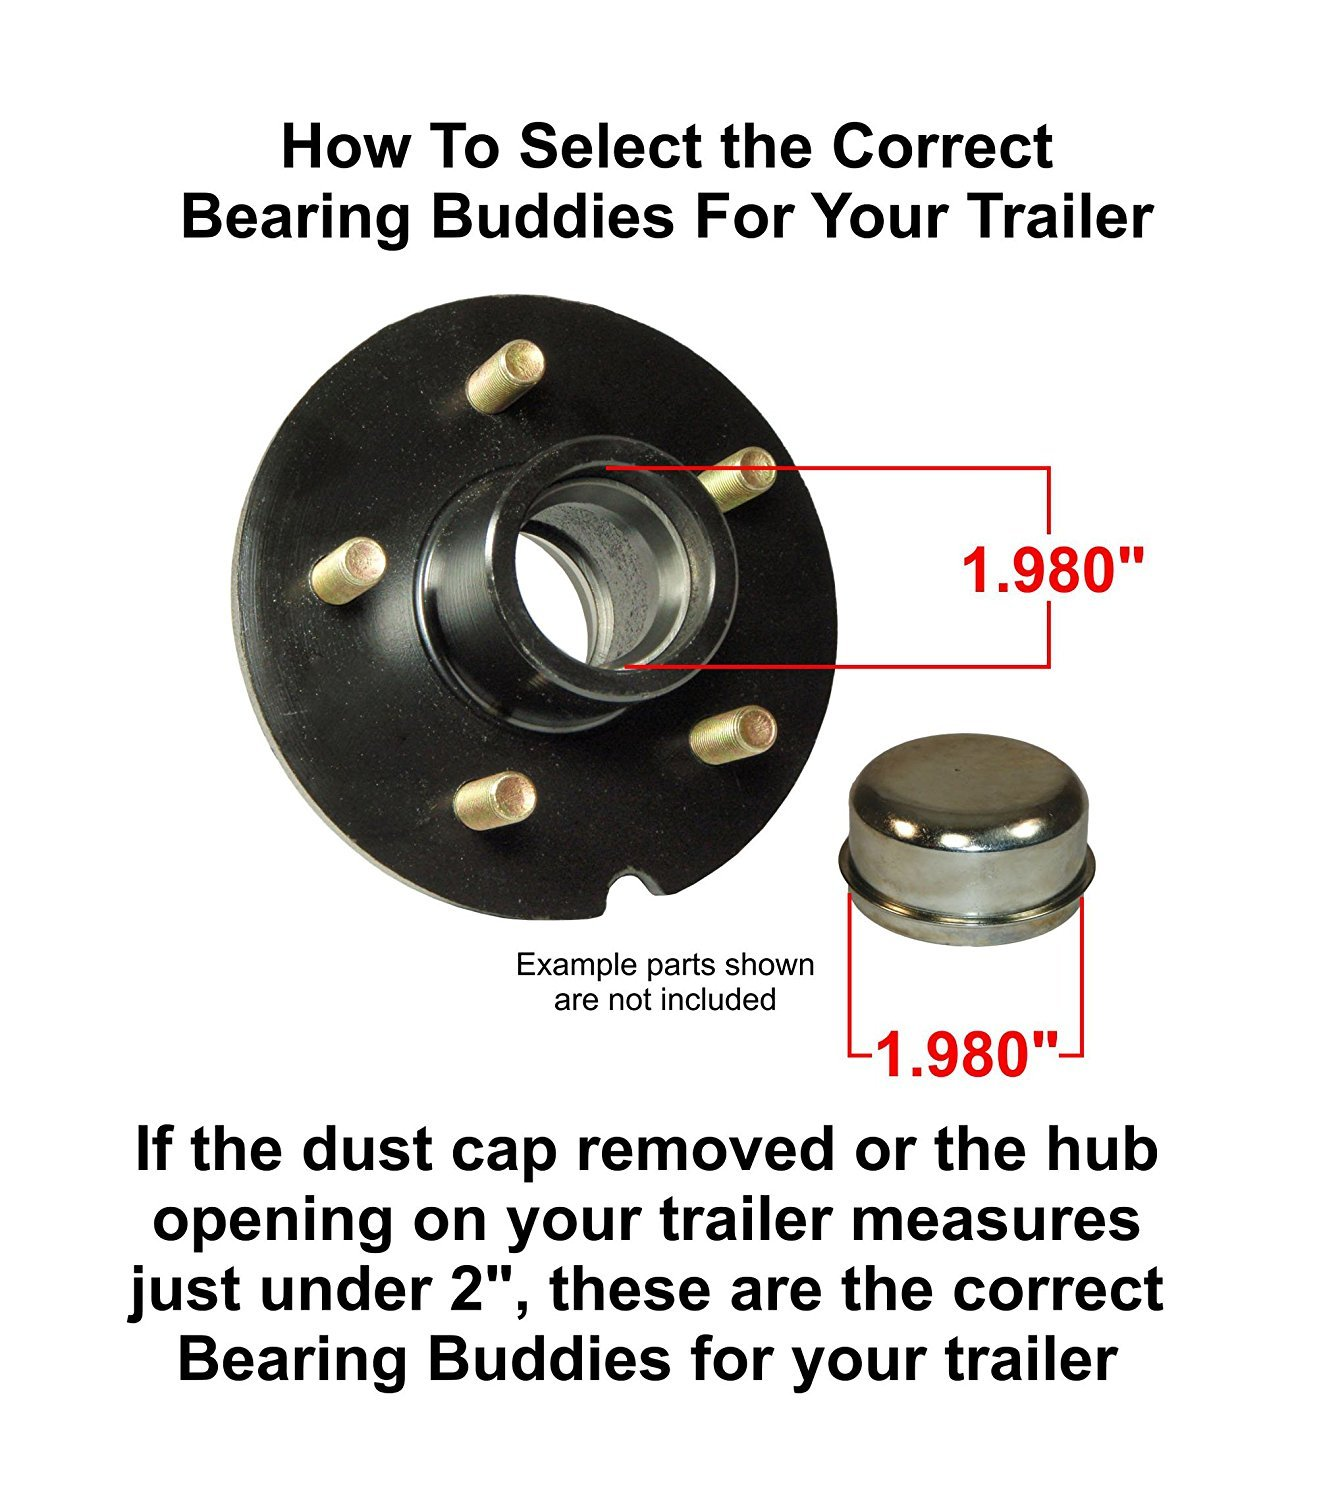 Genuine Bearing Buddy 1.980 Stainless Steel with Protective Bra /& Blue Auto Check Feature for Boat Trailer Wheel Center Caps 1980A-SS 42204 Bearing Buddy 2 1 Pair